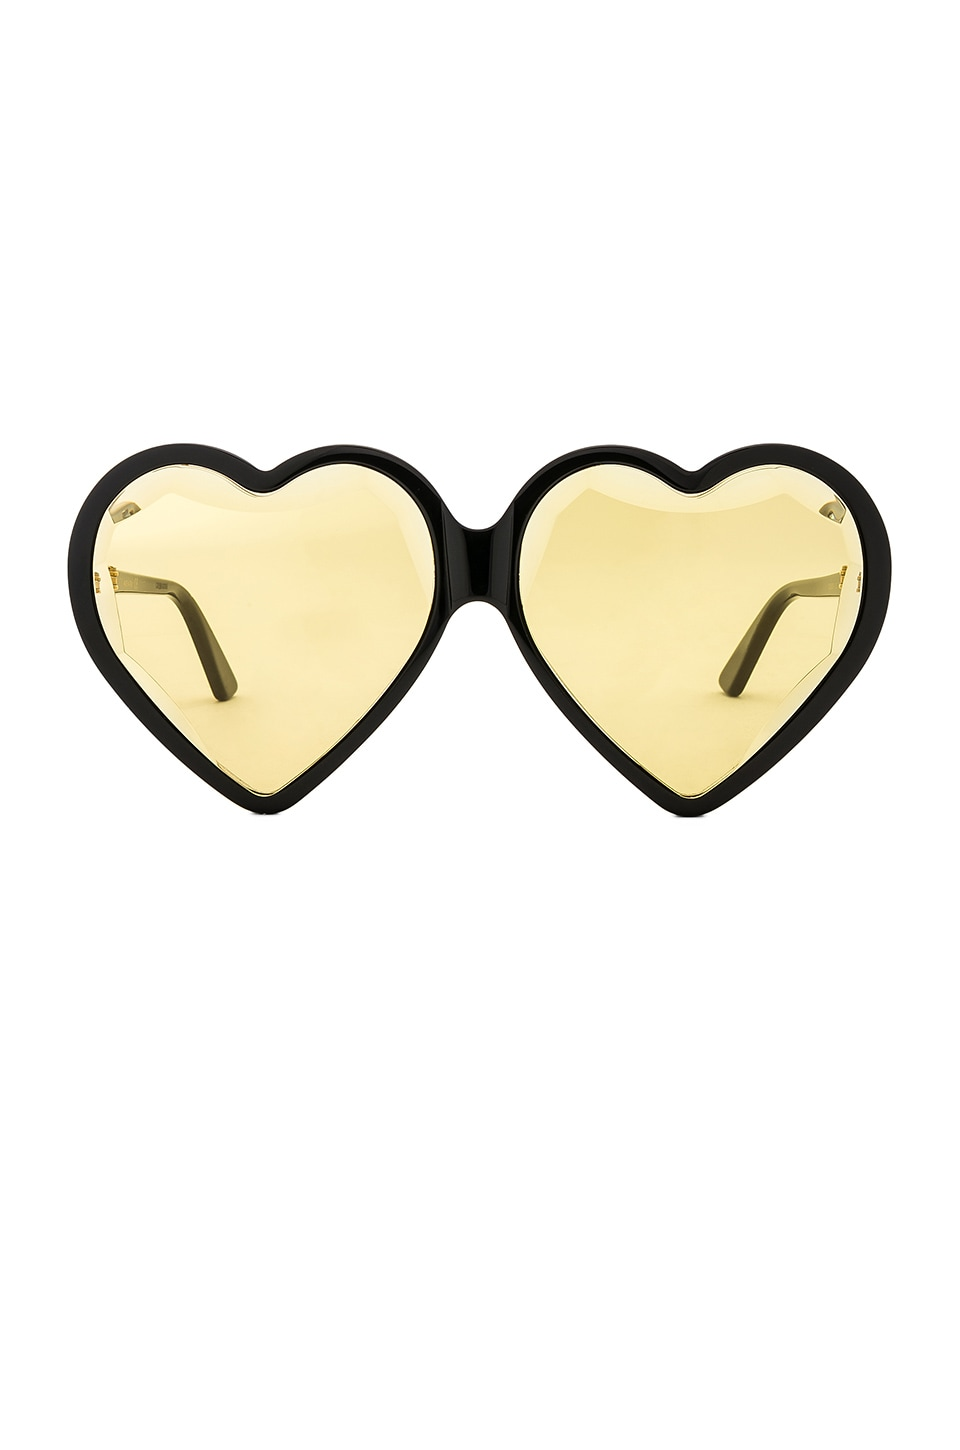 Gucci Heart Frame Acetate in Shiny Black & Yellow